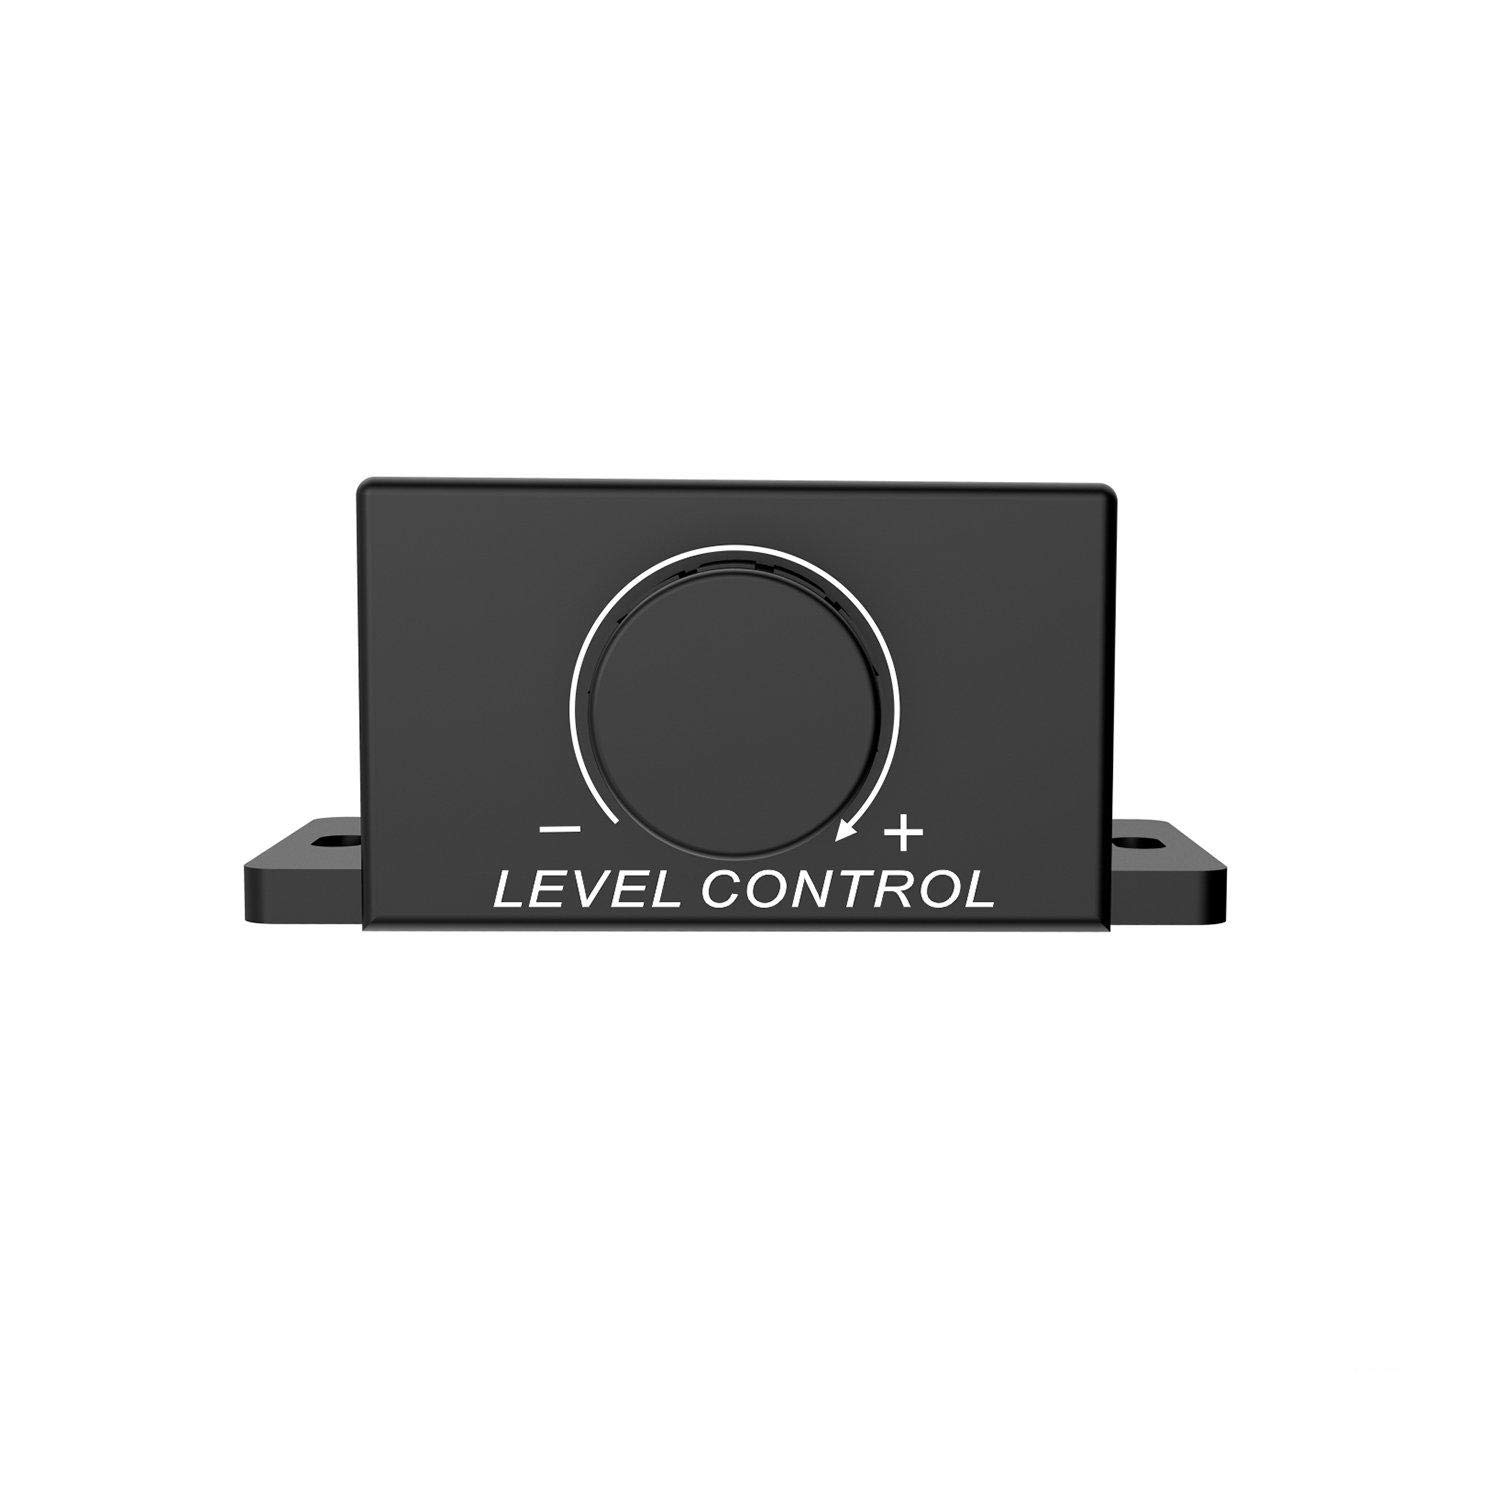 Motorcycle Home Theater Upgrade Version Universal Car Amplifier Audio RCA Amplifier Gain Level Bass Amplifier Volume Control Knob Sub Amp Volume Control Cable for Car Speakers